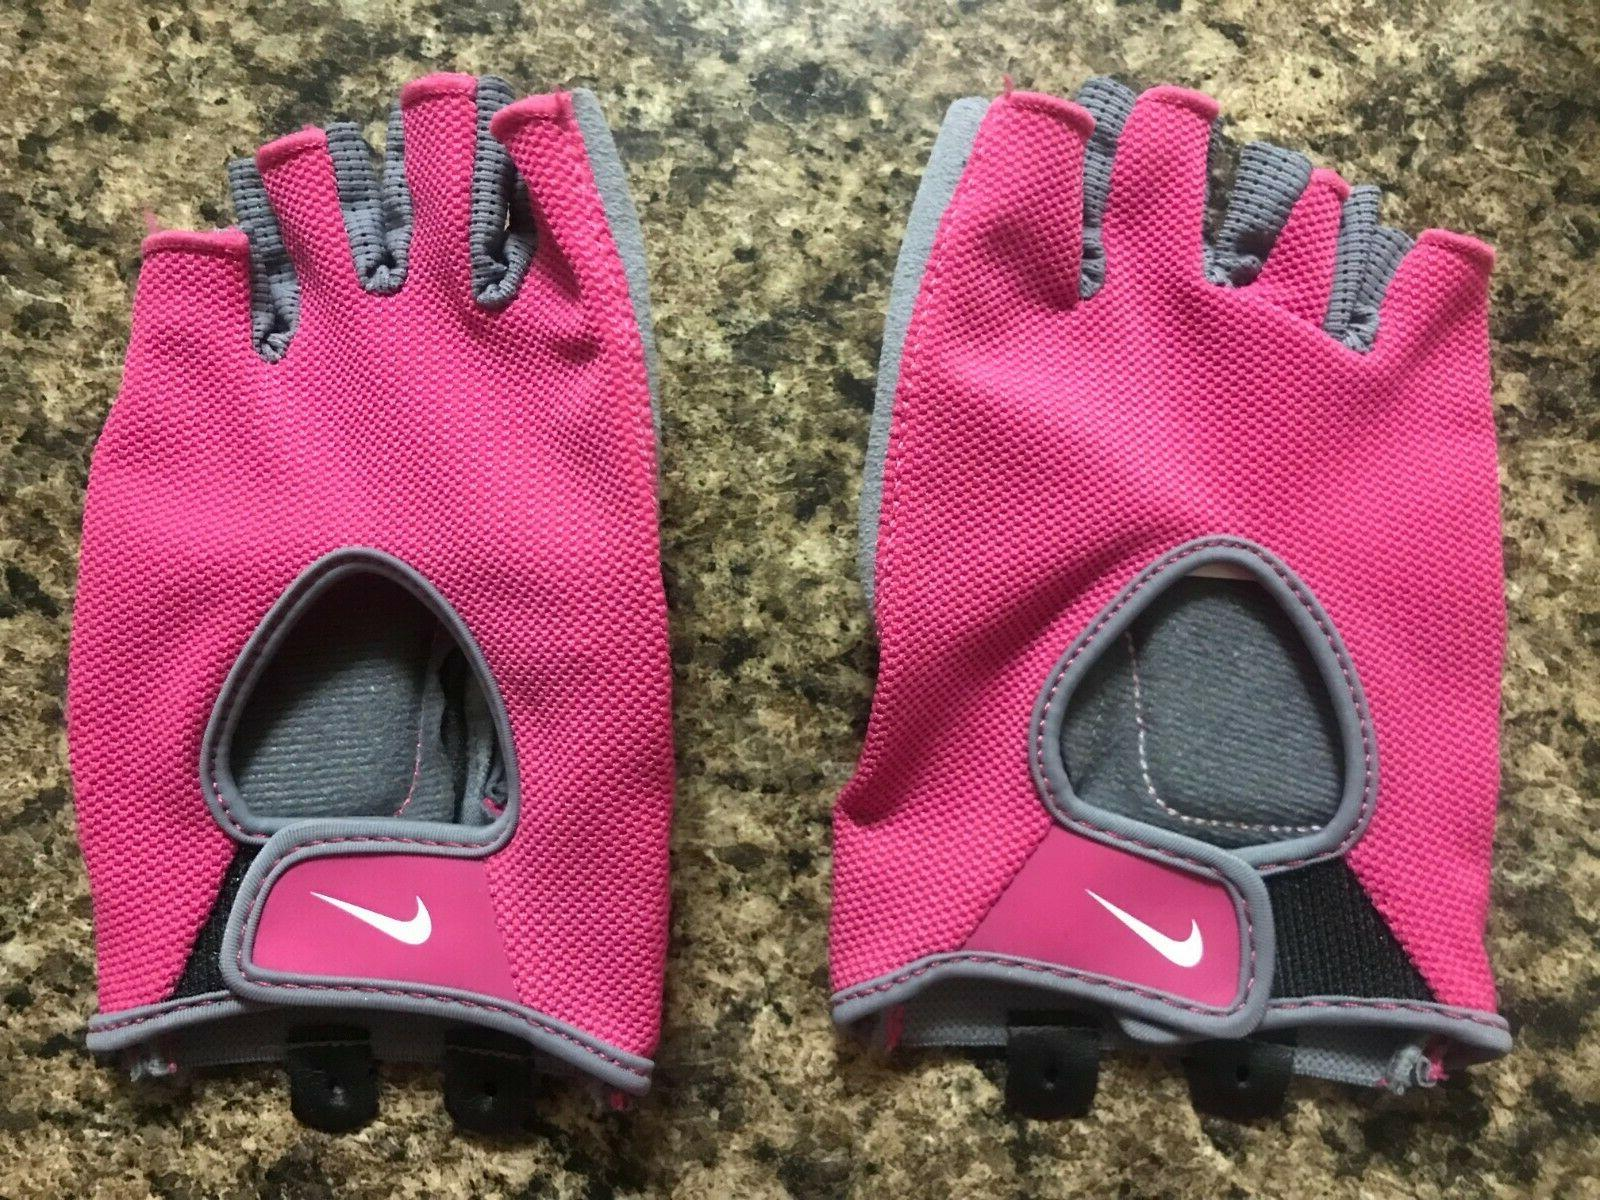 new women s weight lifting gloves in